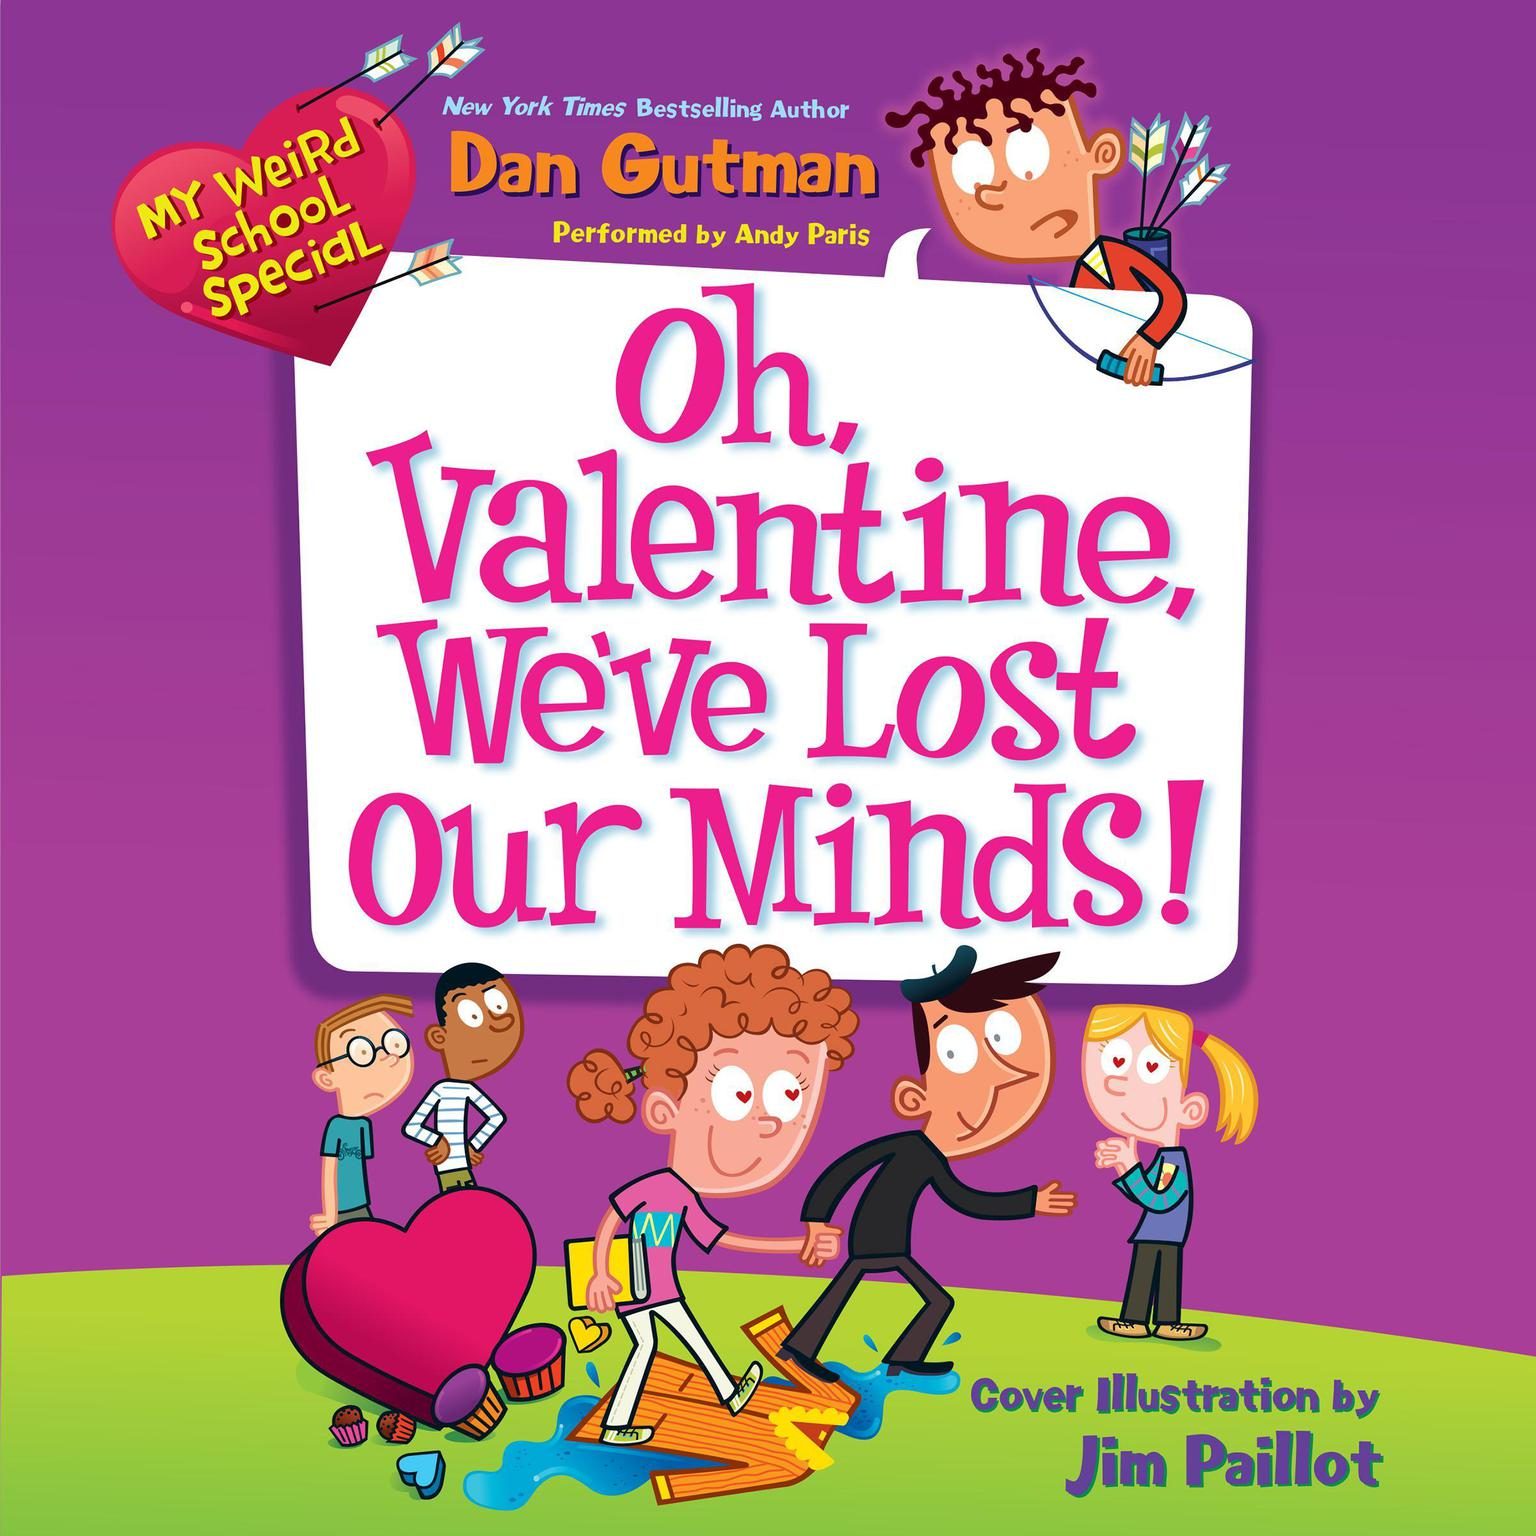 Printable My Weird School Special: Oh, Valentine, We've Lost Our Minds! Audiobook Cover Art